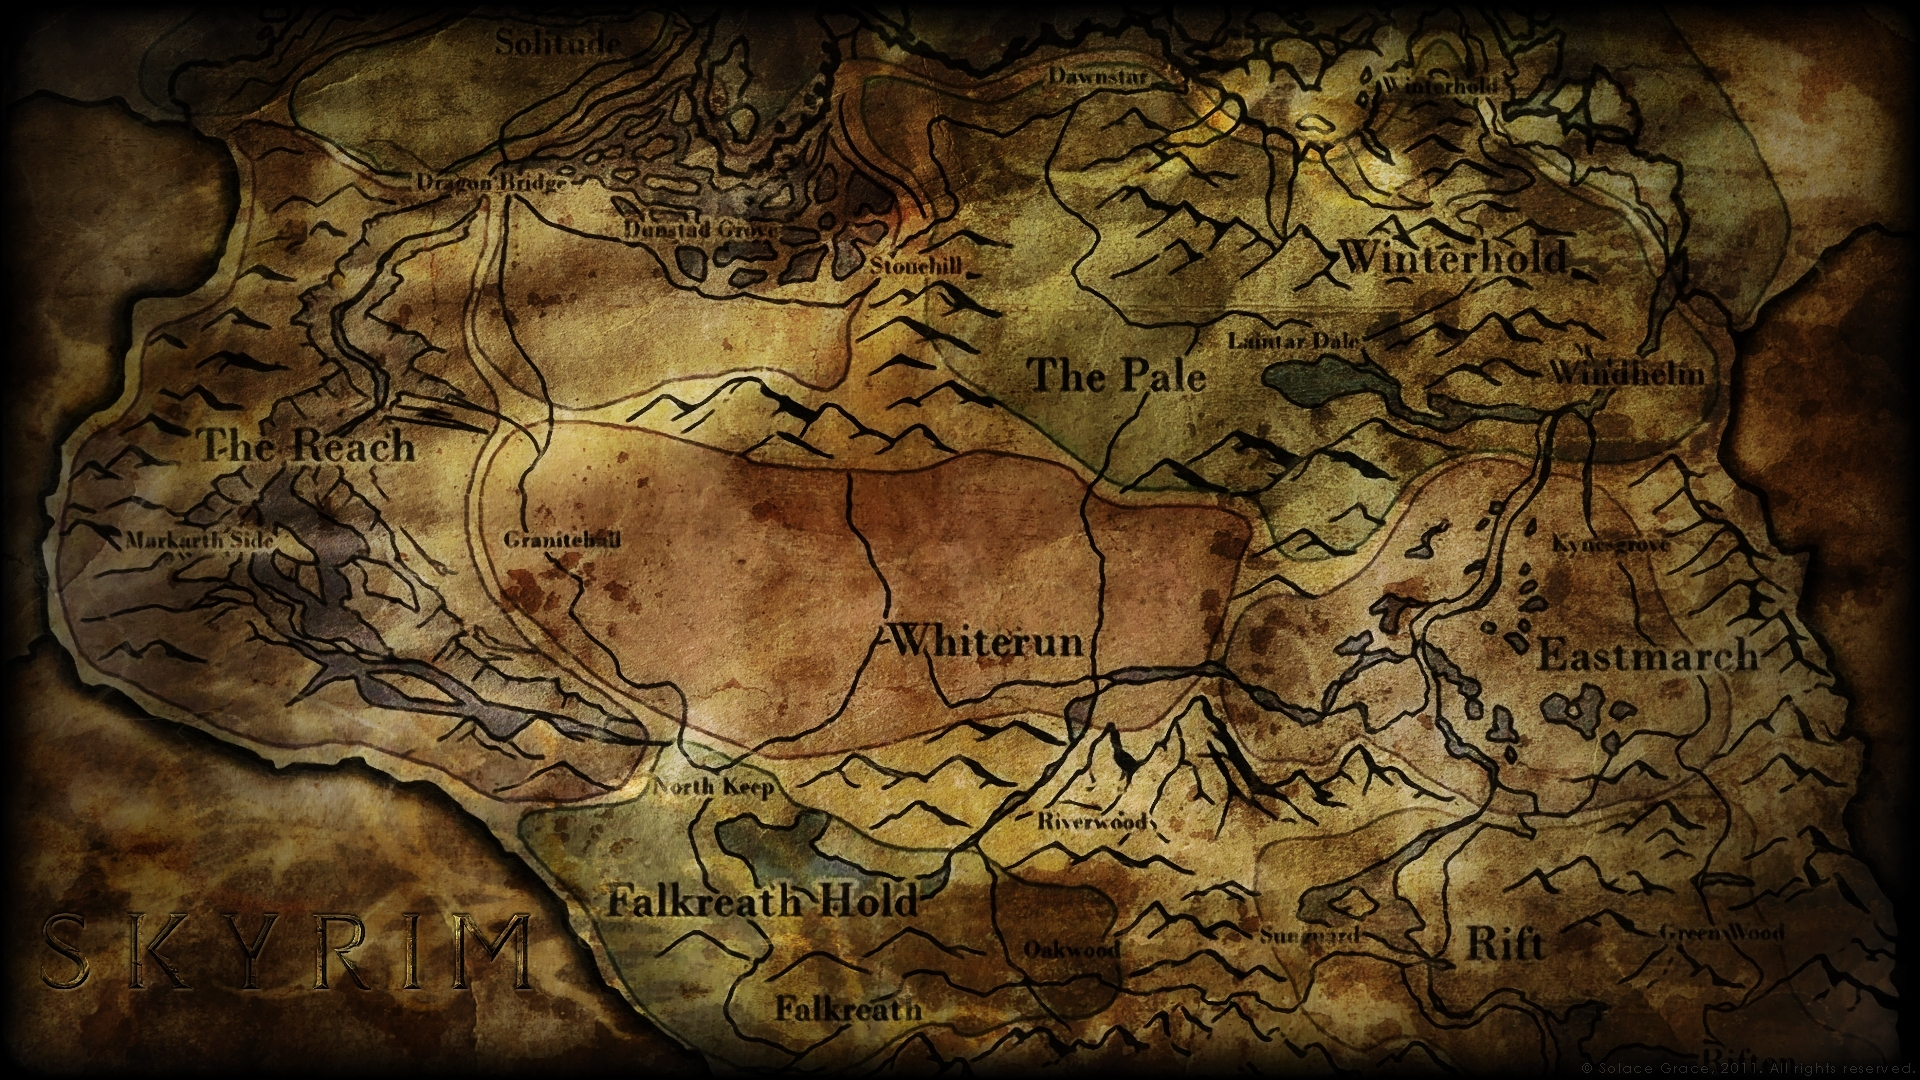 skyrim map - over 25 different maps of skyrim to map out your journey